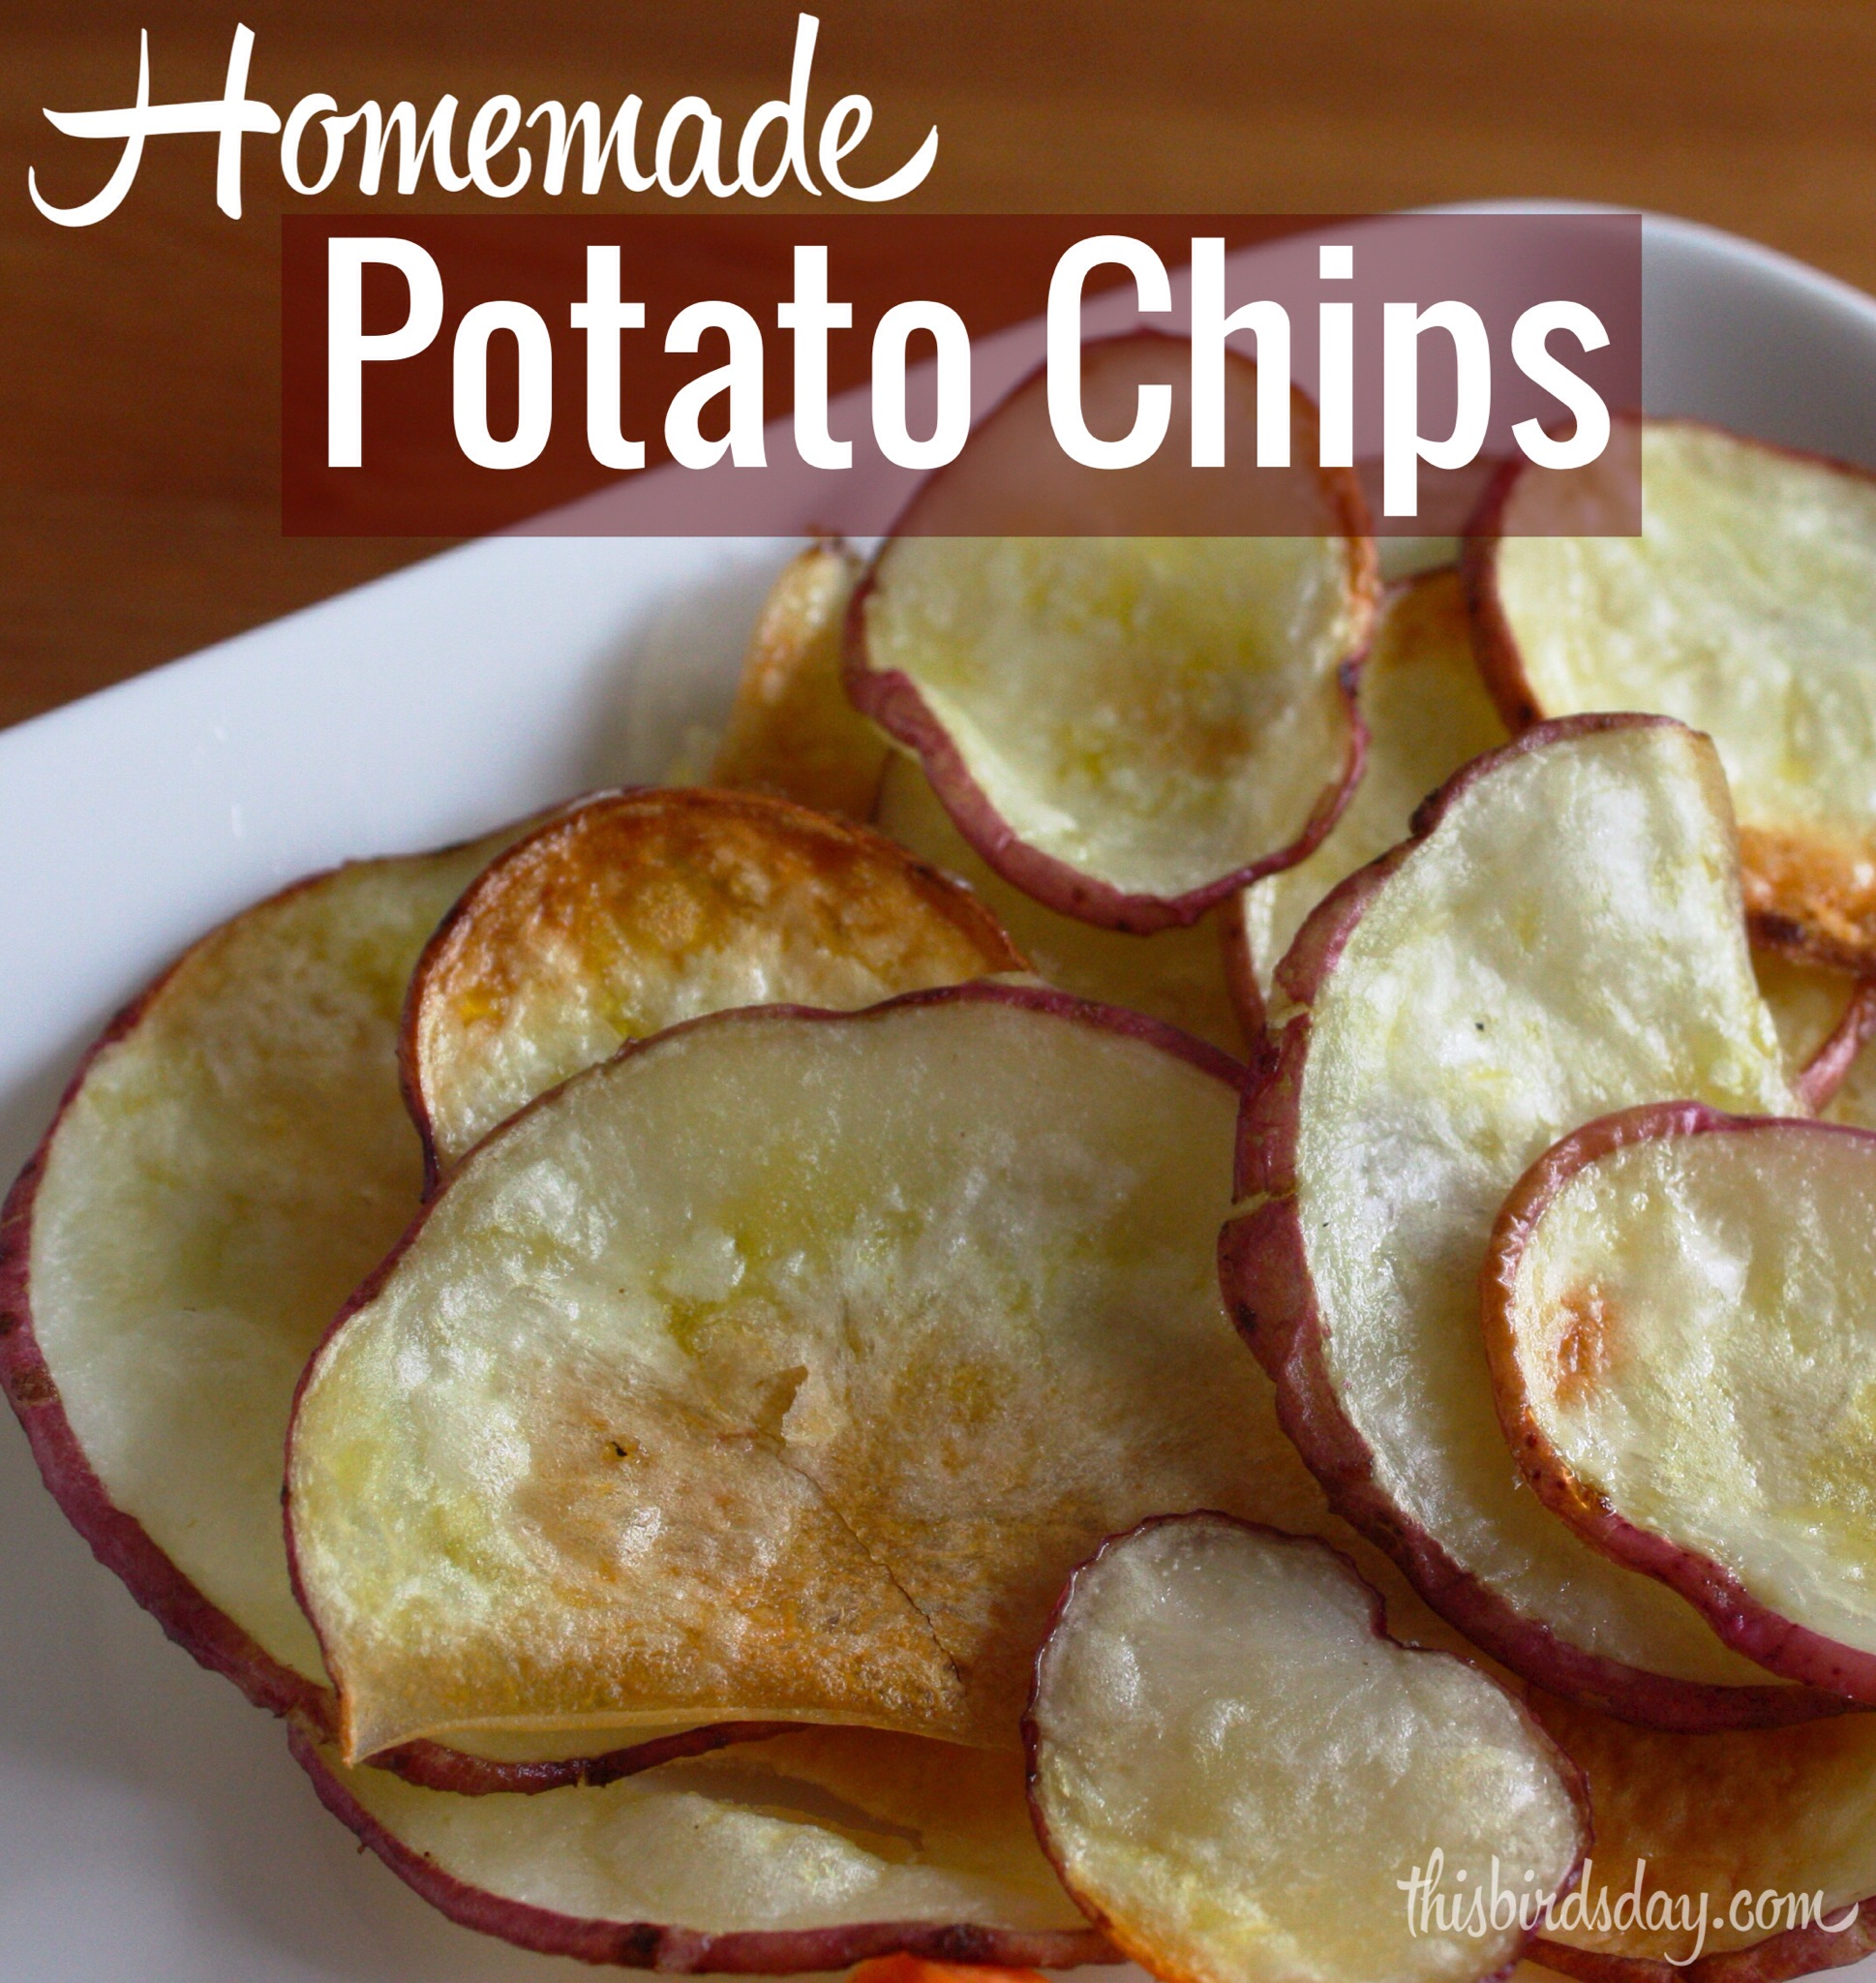 Homemade Baked Potato Chips Recipe